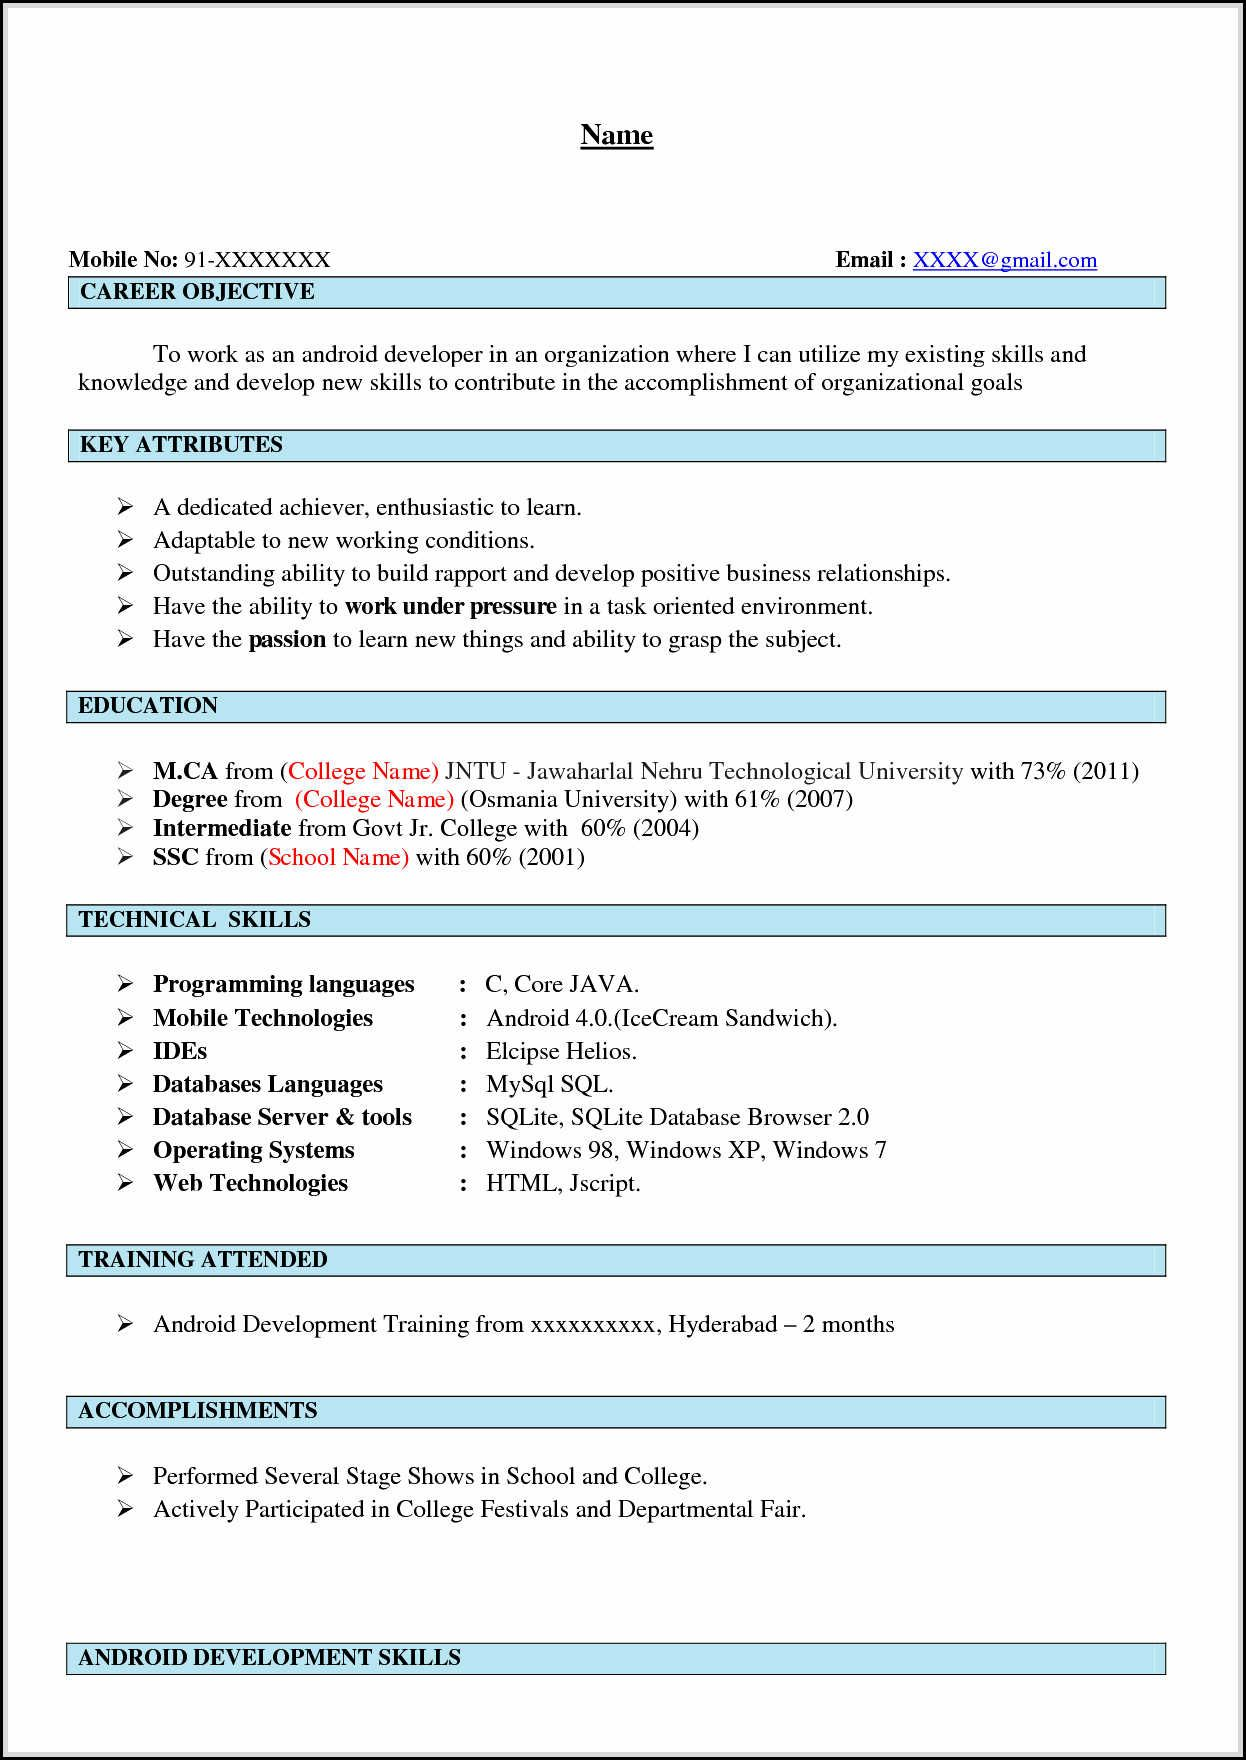 android developer resume sample danaya us examples free template word good for years Resume Android Resume For 2 Years Experience